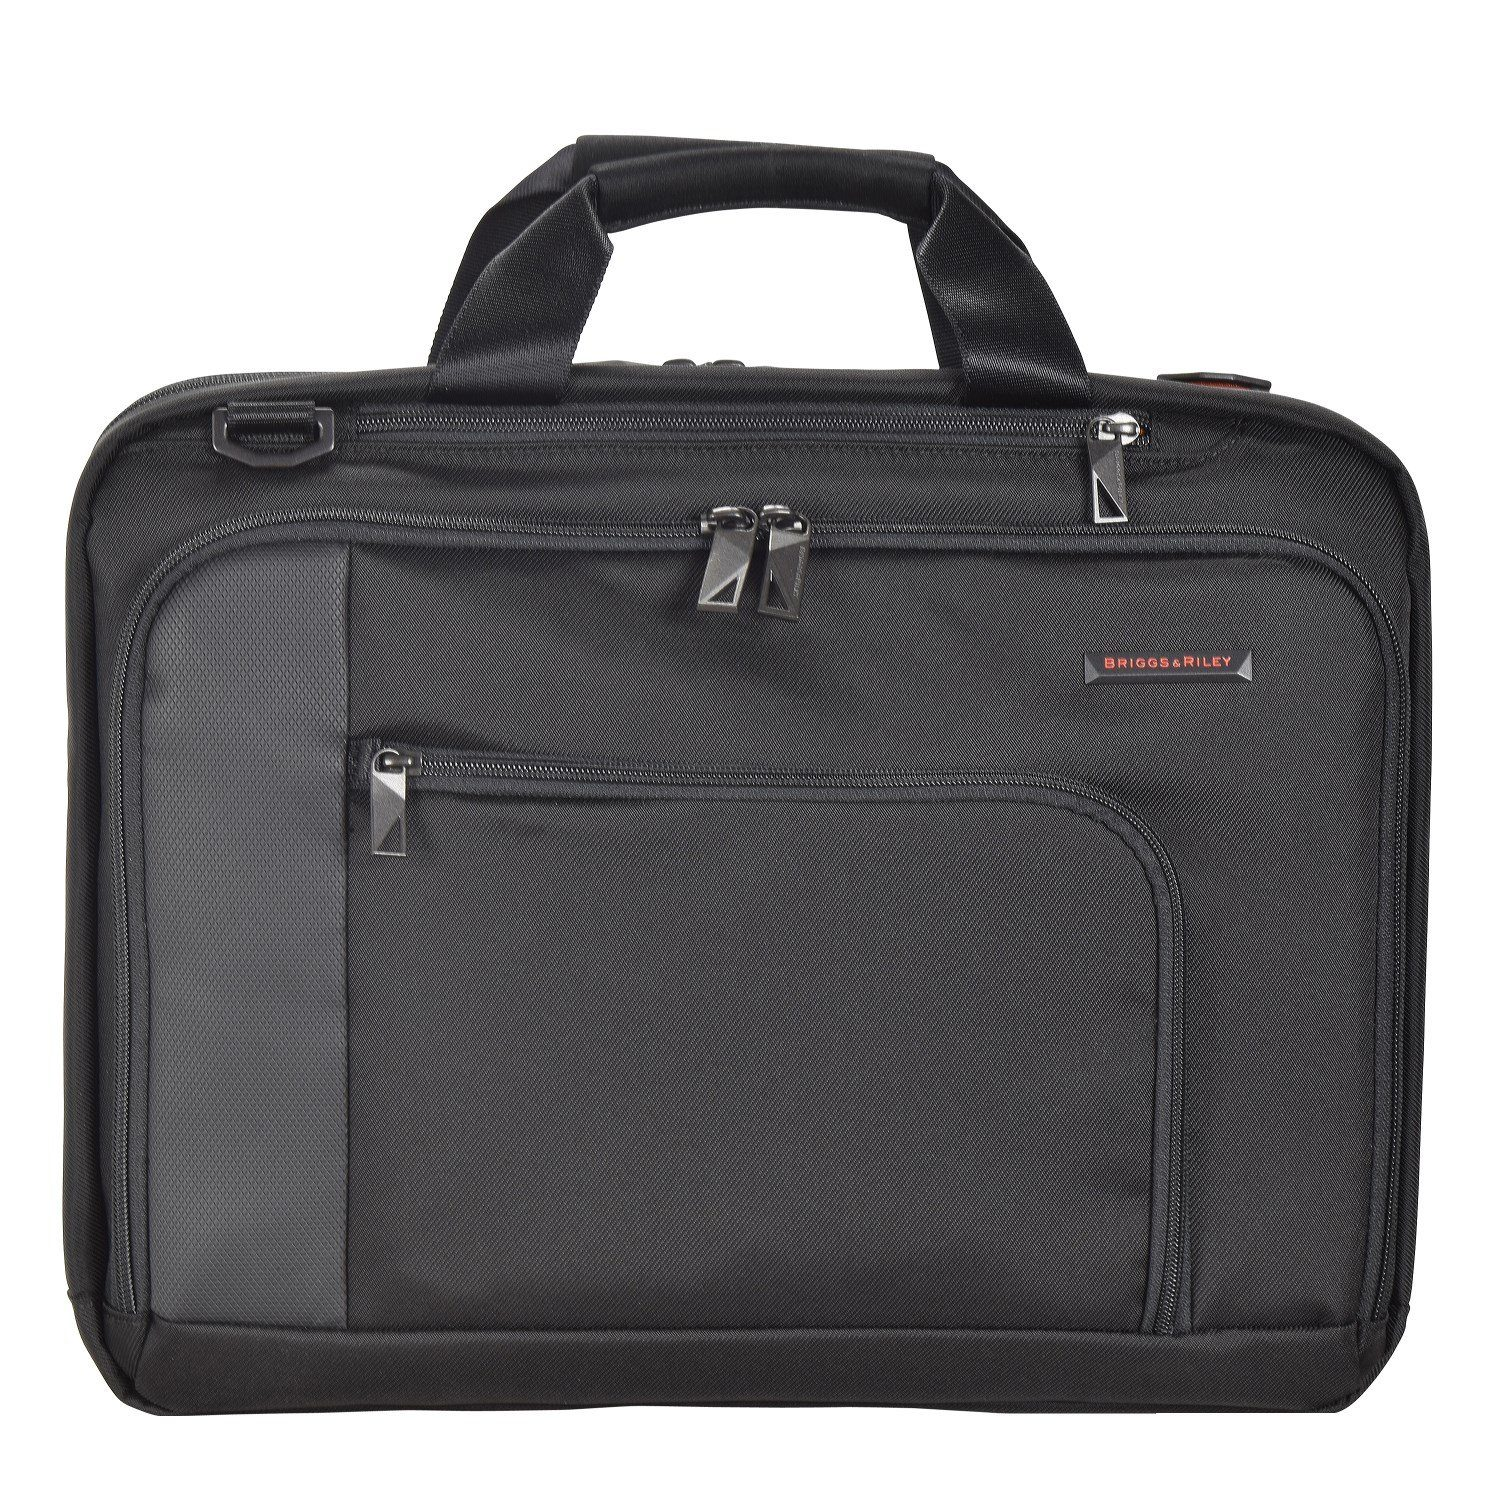 Briggs&Riley Briggs&Riley Verb Aktentasche 41 cm Laptopfach